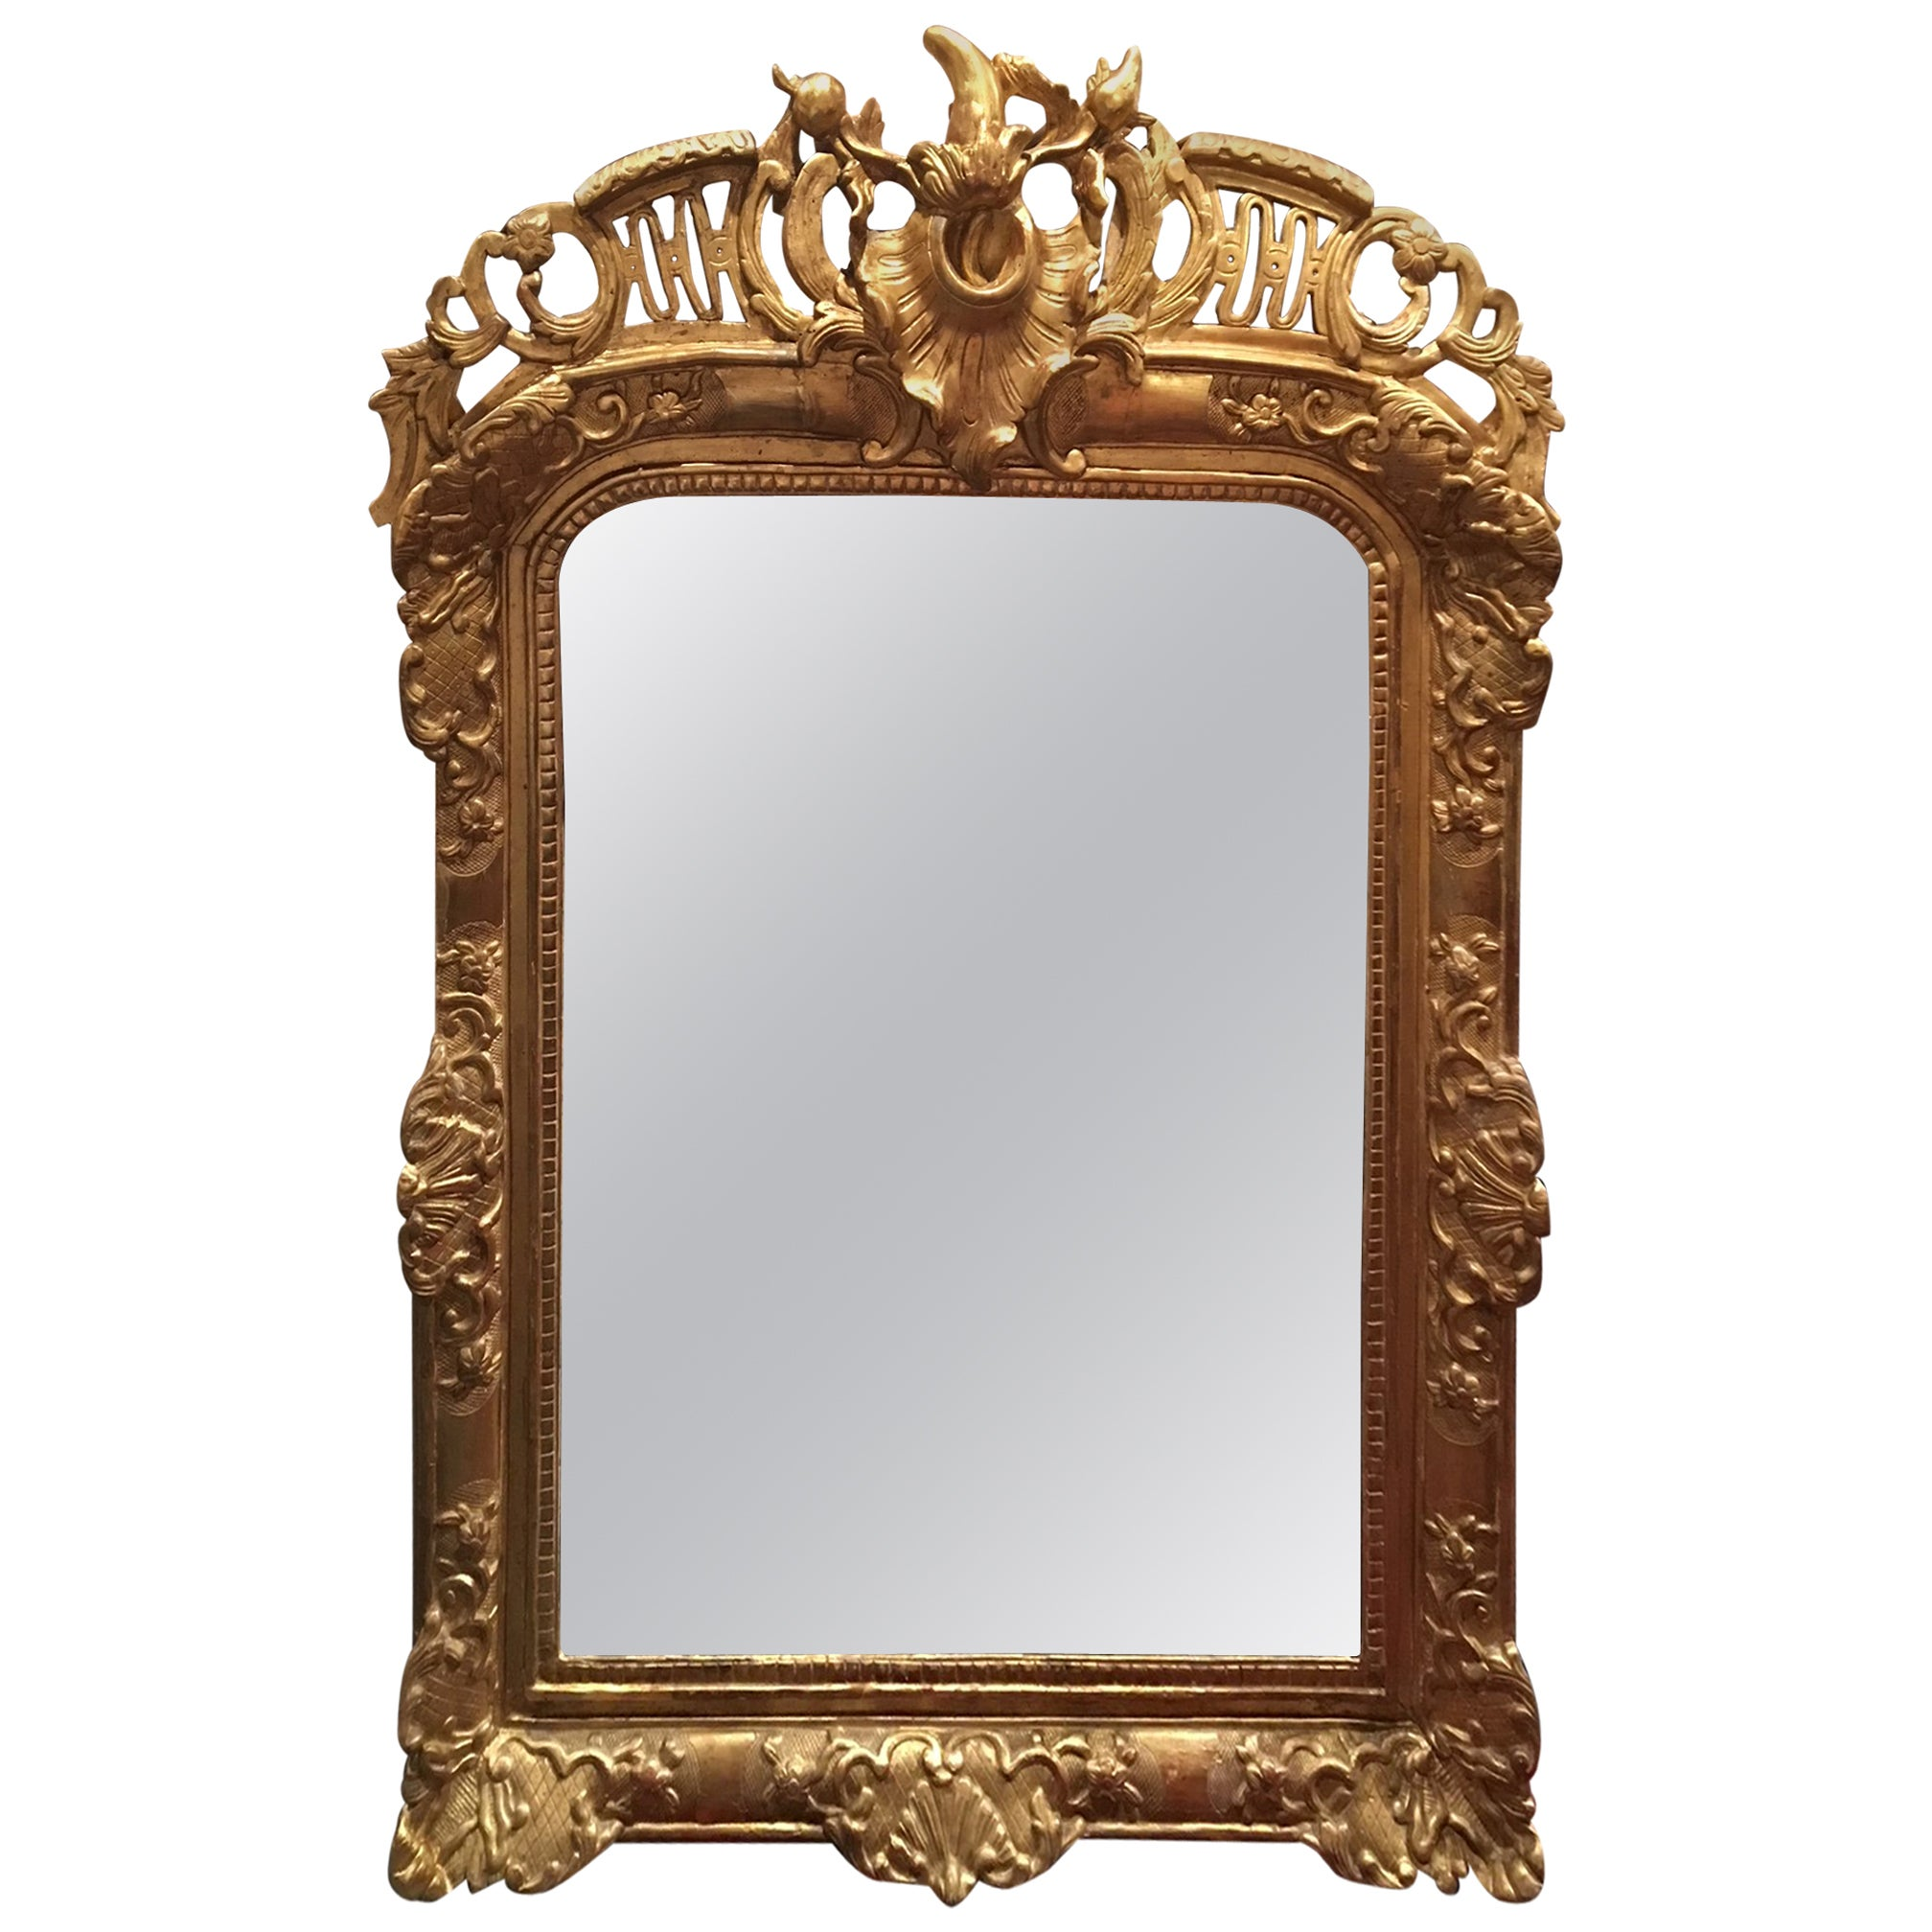 Louis XV Style Giltwood Overmantel Mirror, Early 19th Century